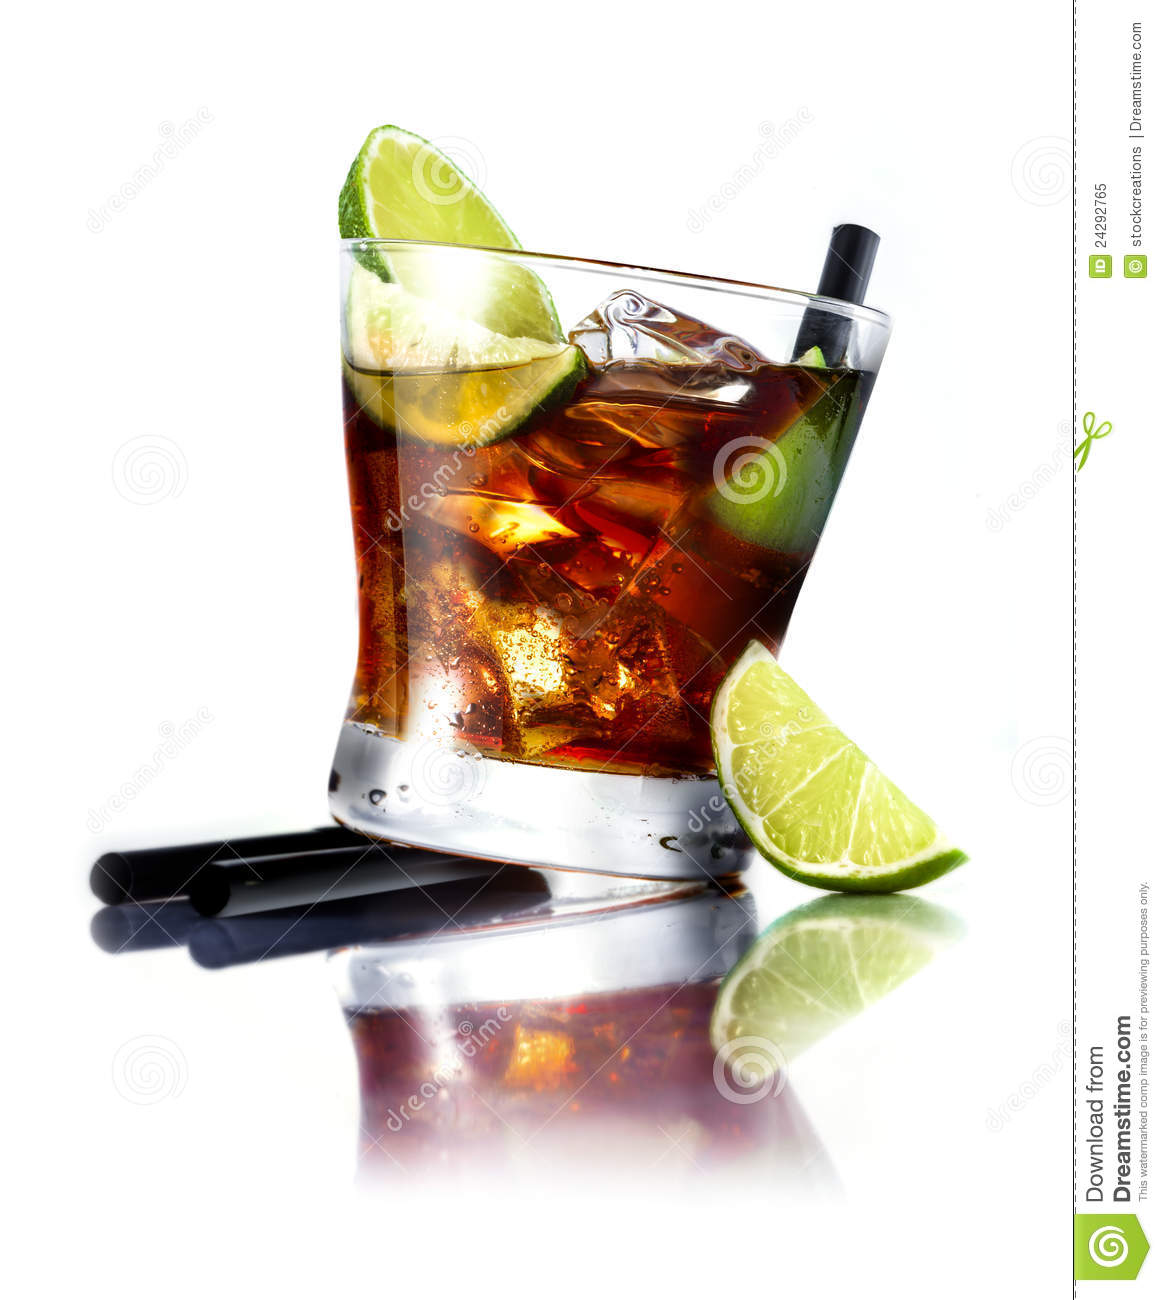 Cuba libre cocktail royalty free stock photo image 24292765 for White rum with coke